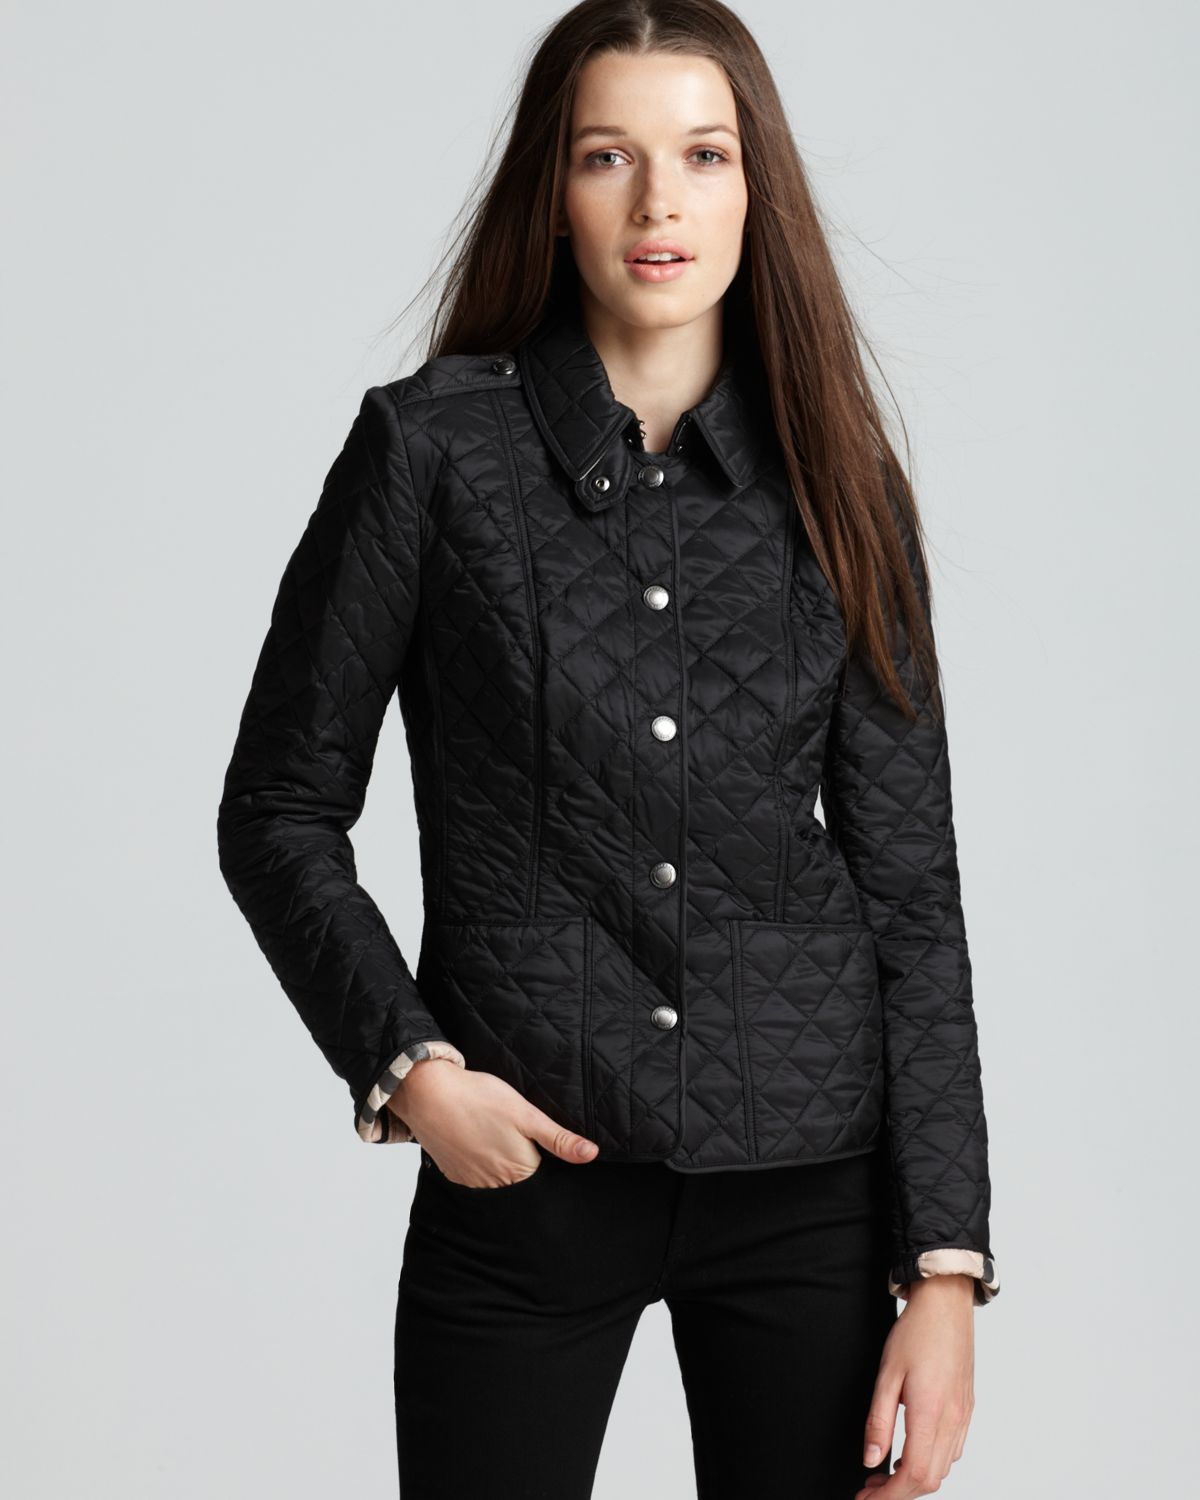 Find great deals on eBay for Black Quilted Leather Jacket in Coats and Jackets for the Modern Lady. Shop with confidence. Find great deals on eBay for Black Quilted Leather Jacket in Coats and Jackets for the Modern Lady. Ralph Lauren women's quilted barn jacket Size S black with faux leather trim.